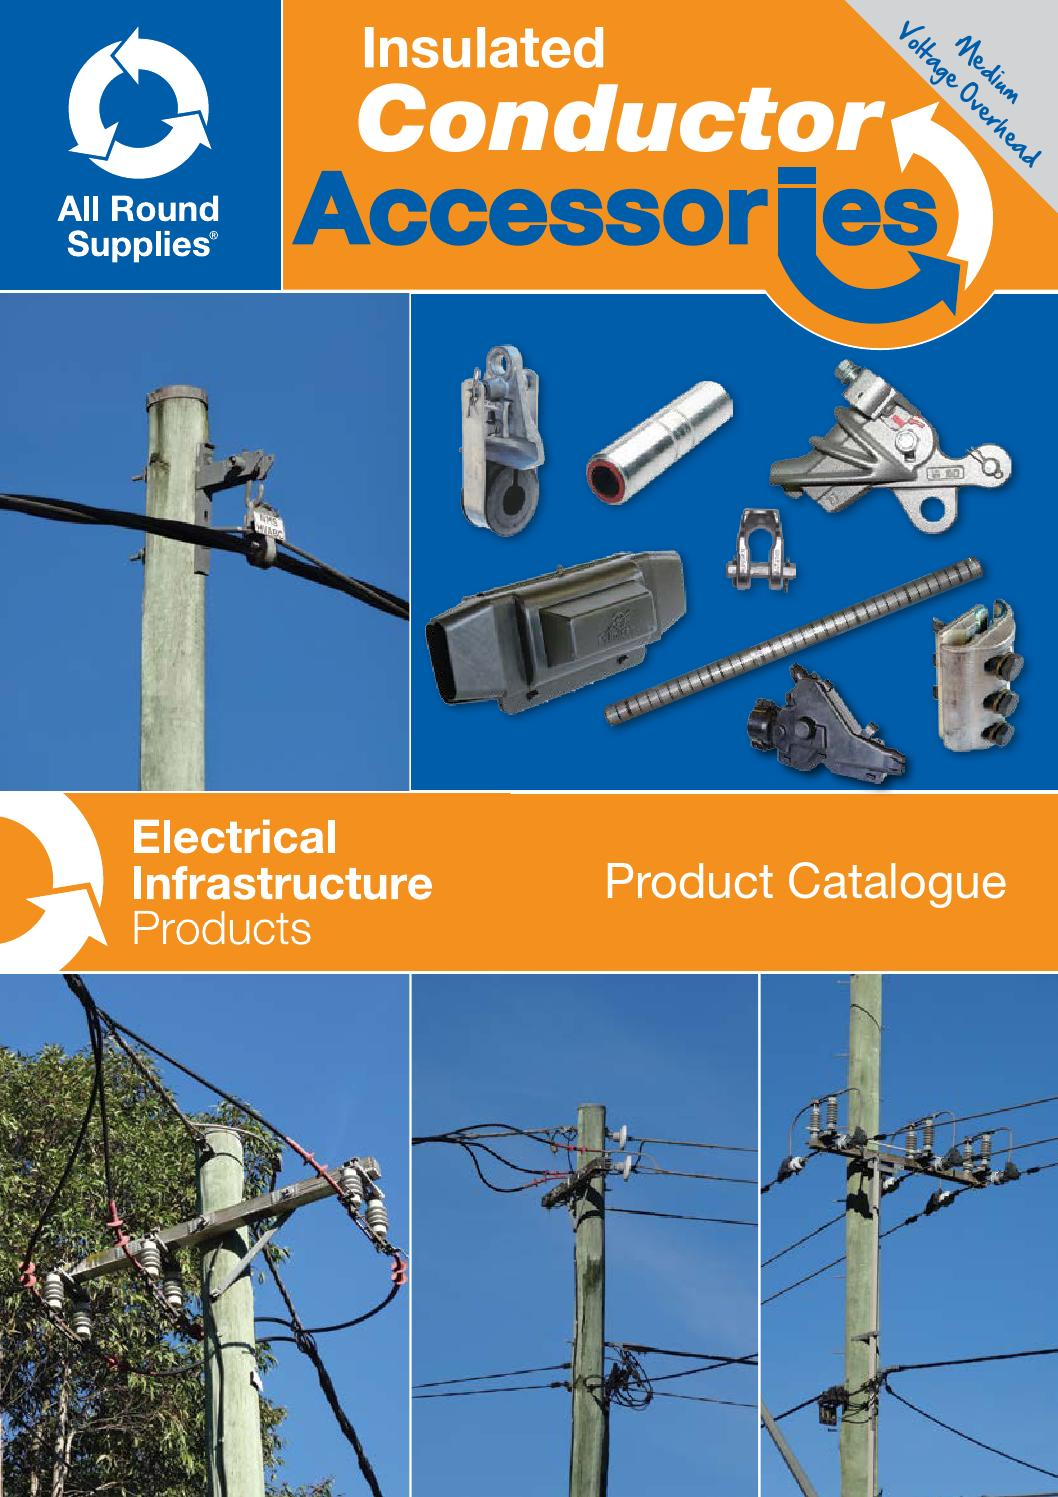 All Round Supplies Insulated Conductor Accessories By All